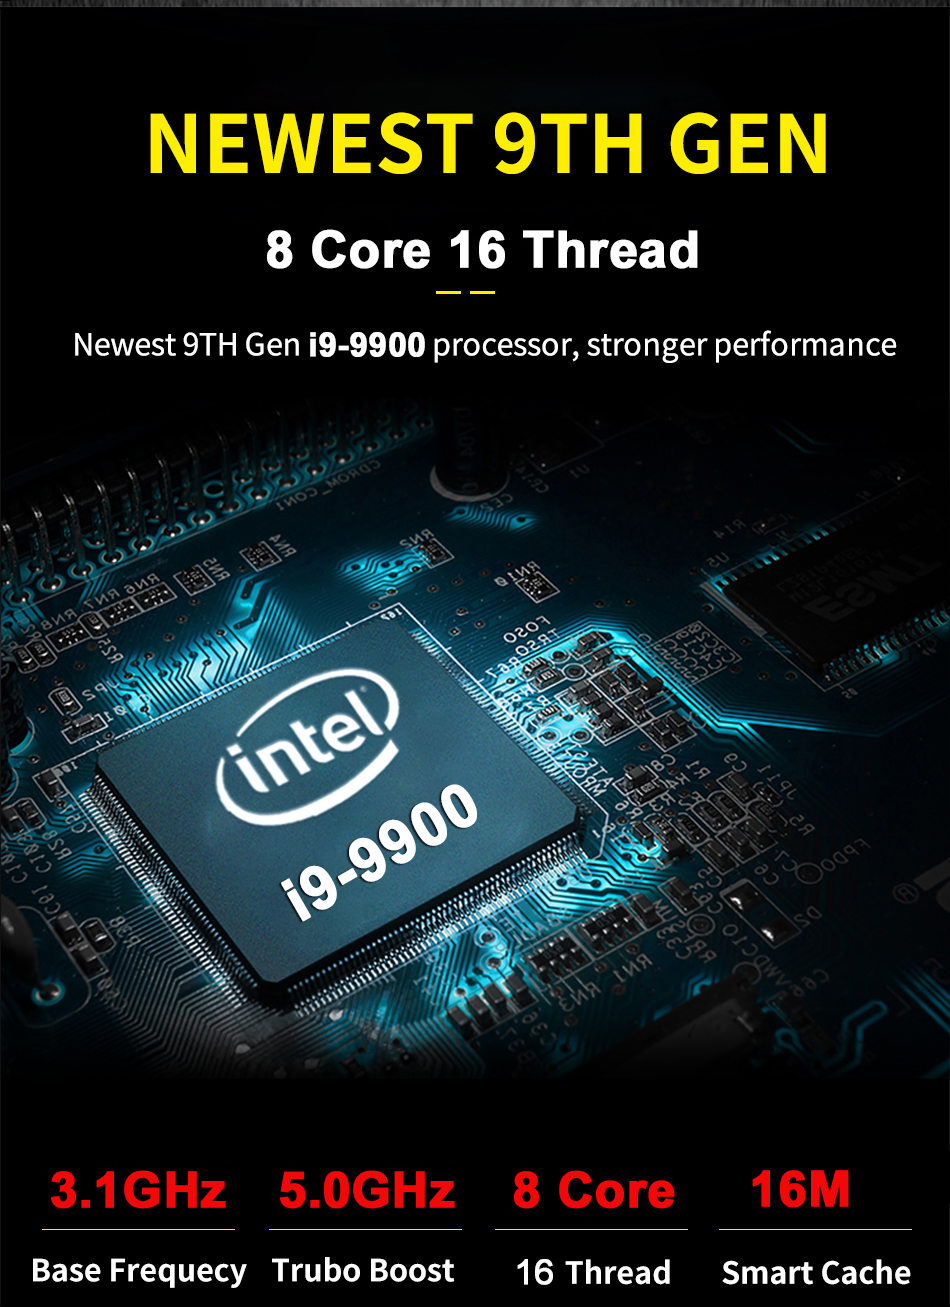 Intel i9 9900 Desktop Gaming Computer Mini PC Windows10 GTX 1650 4Gb GDDR5 Dedicated Graphics Multi Display NVME WiFi 3D Design